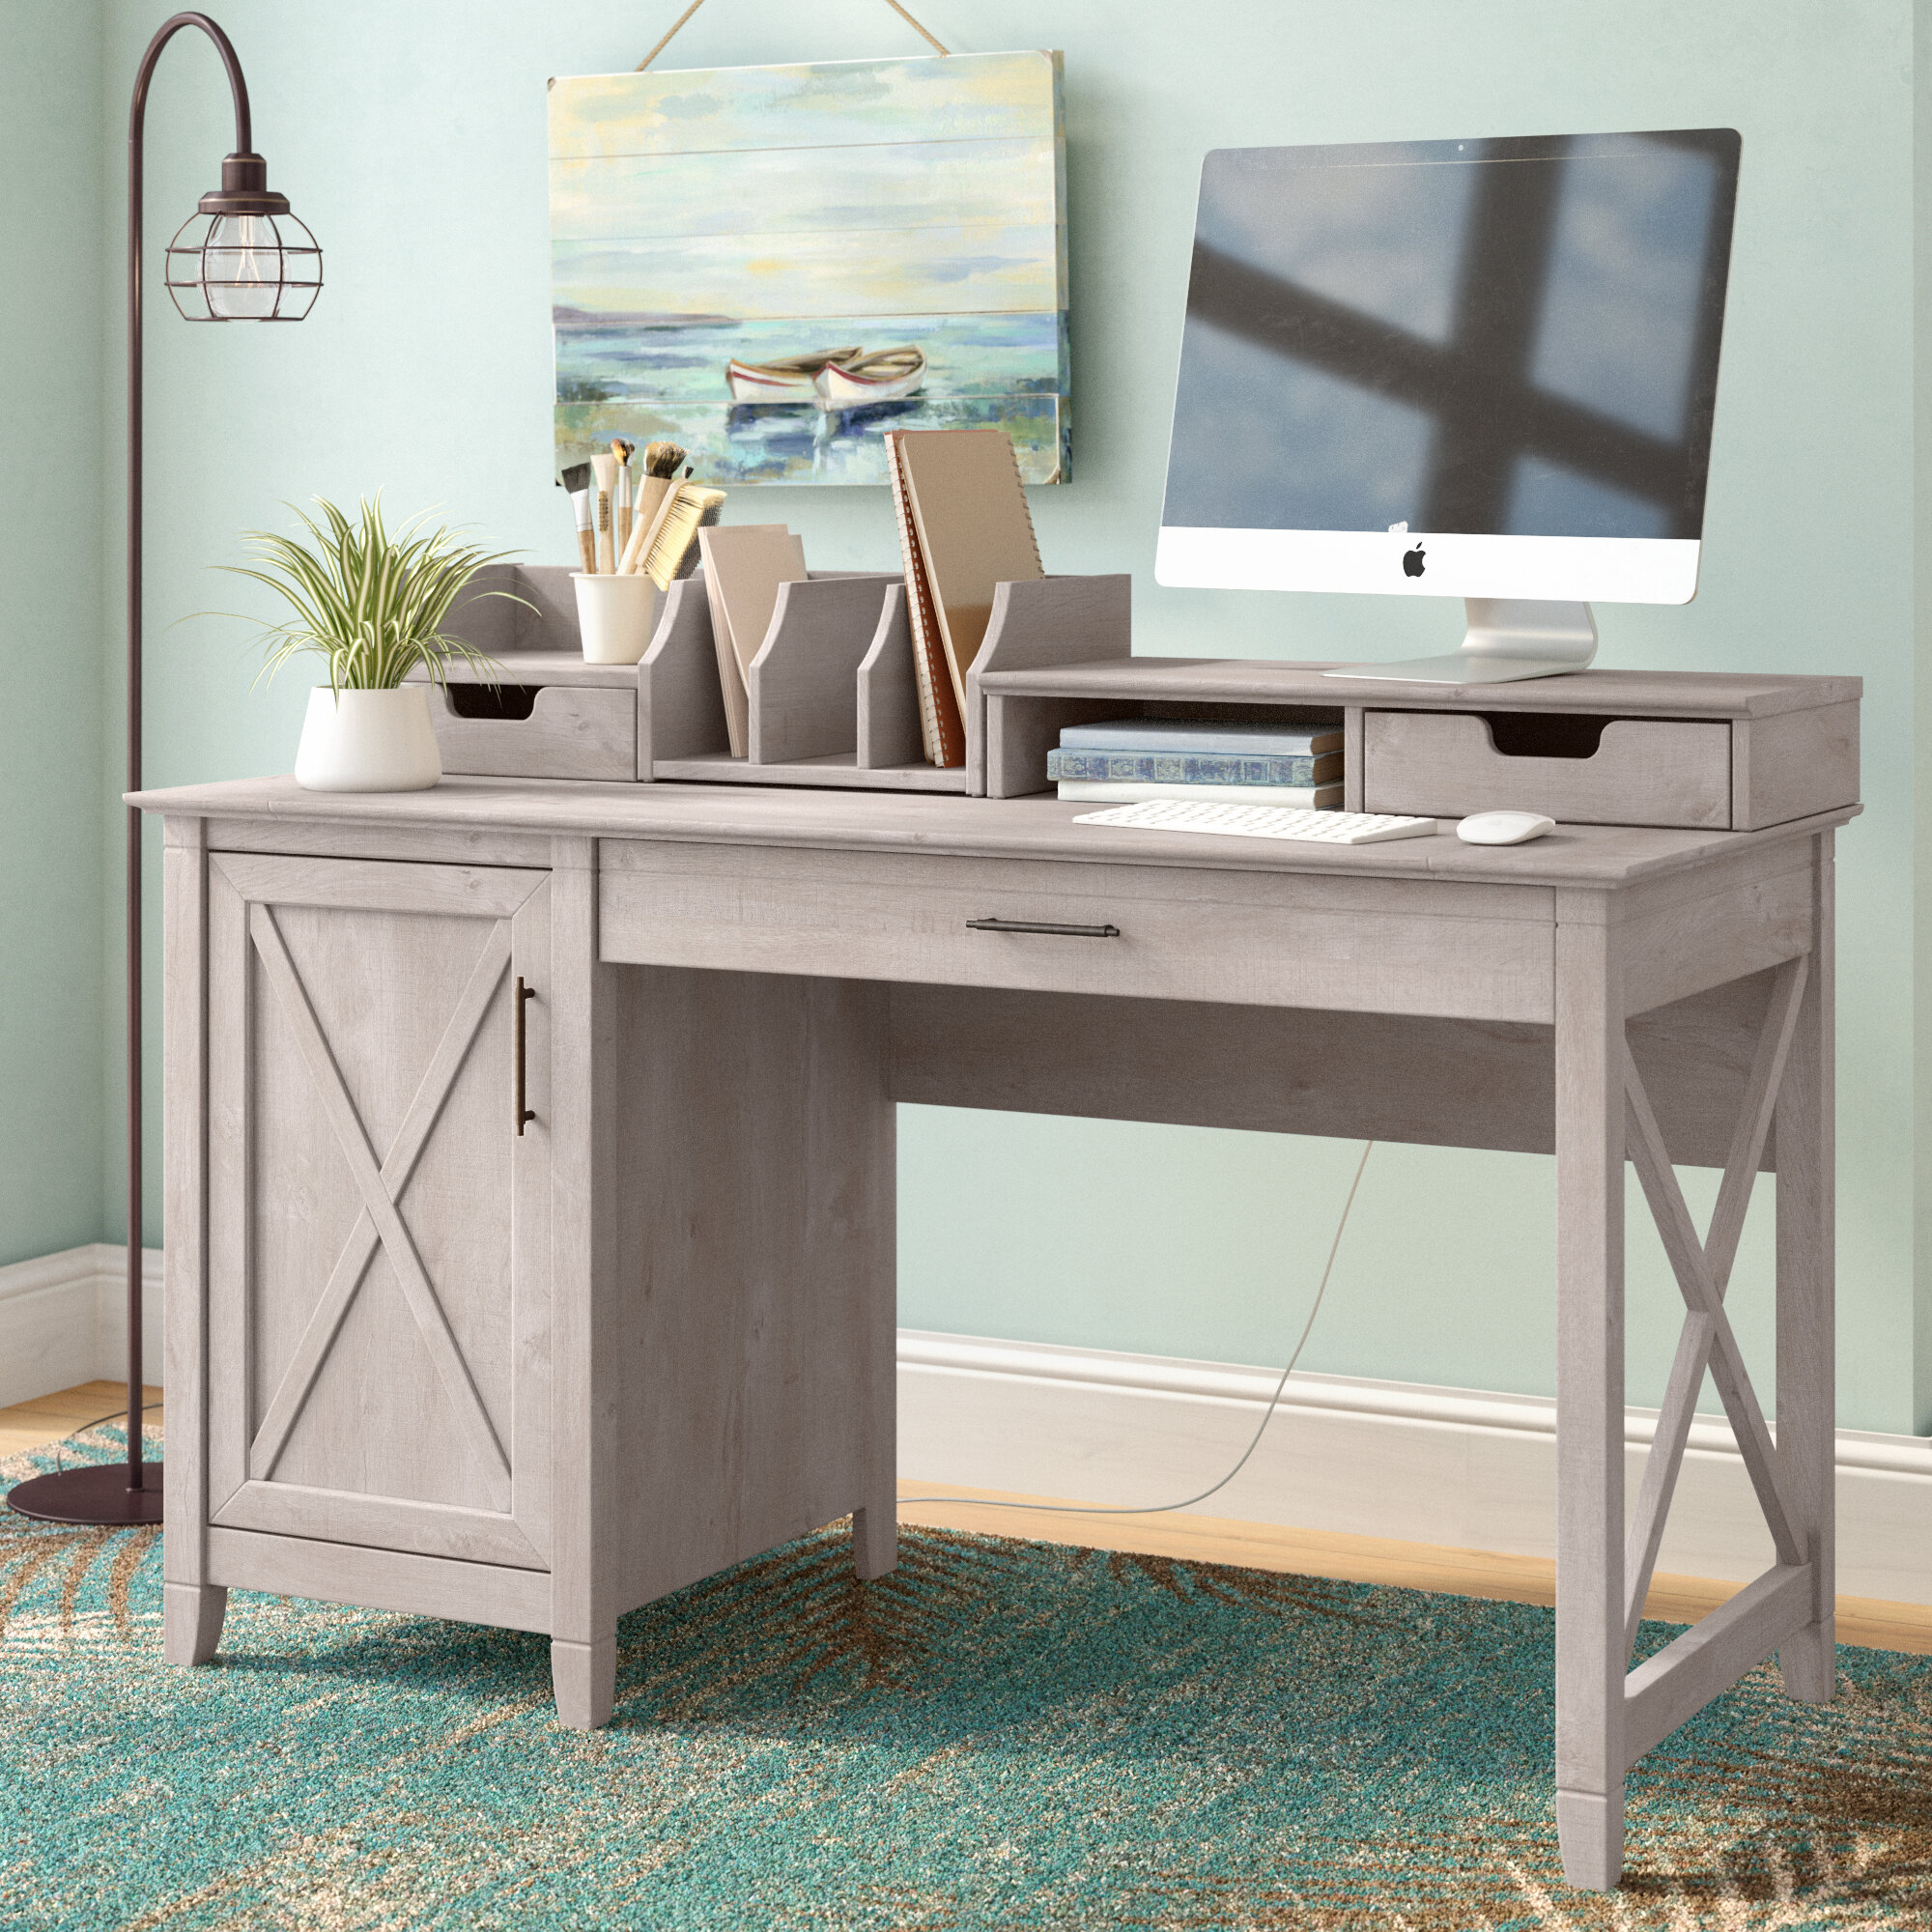 furniture eagle computer hutch cfm coastal pedestal hayneedle product desk customizable single with optional master